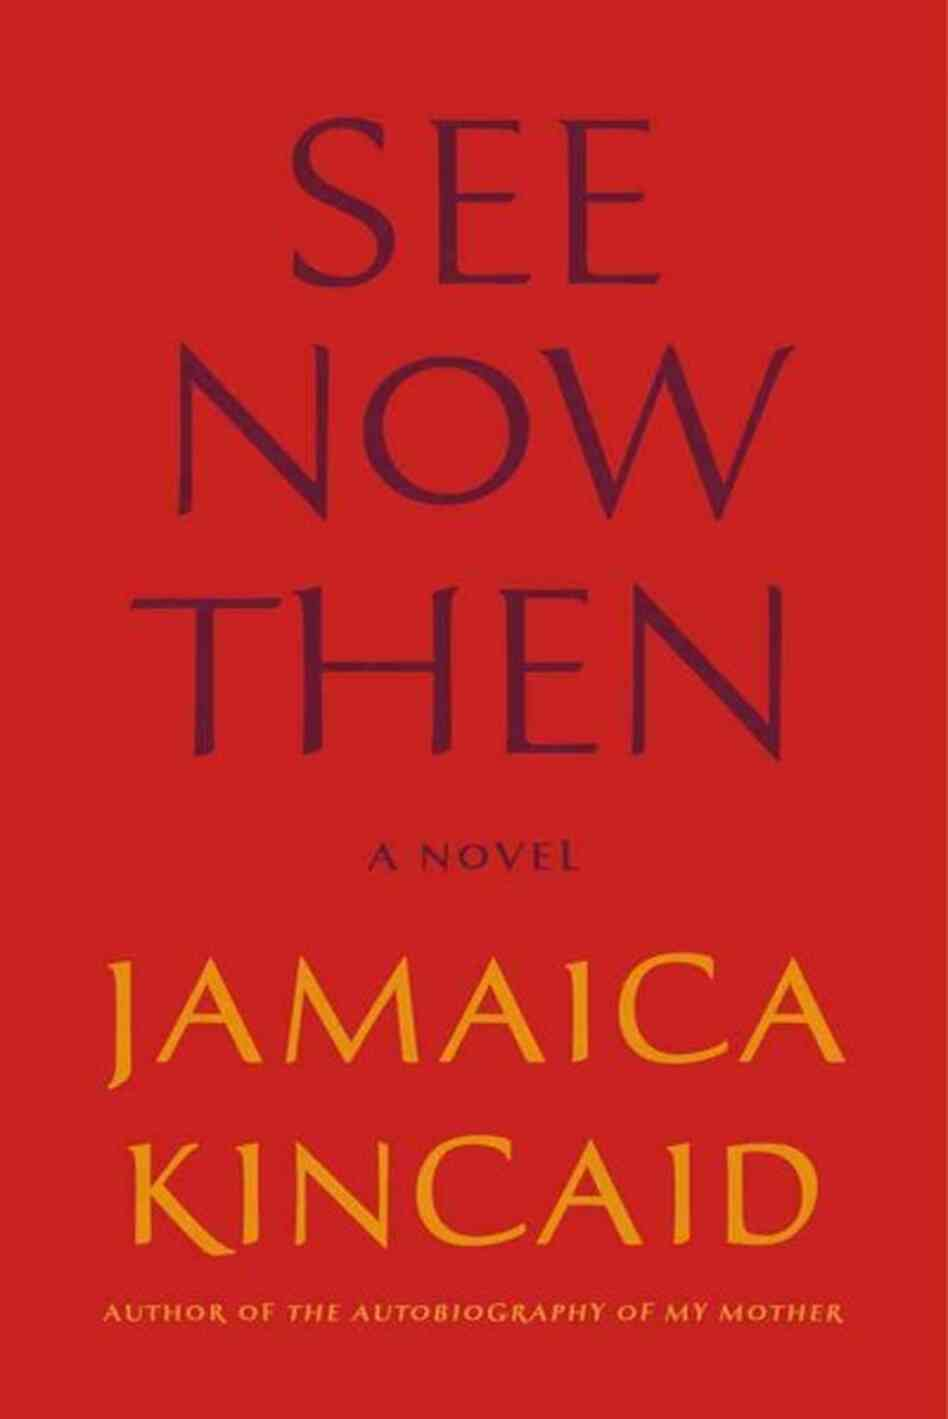 a literary analysis of on seeing england for the first time by jamaica kincaid On seeing england for the first time jamaica kincaid jamaica kincaid was born in 1949 on the caribbean island of antigua, then a british colony.